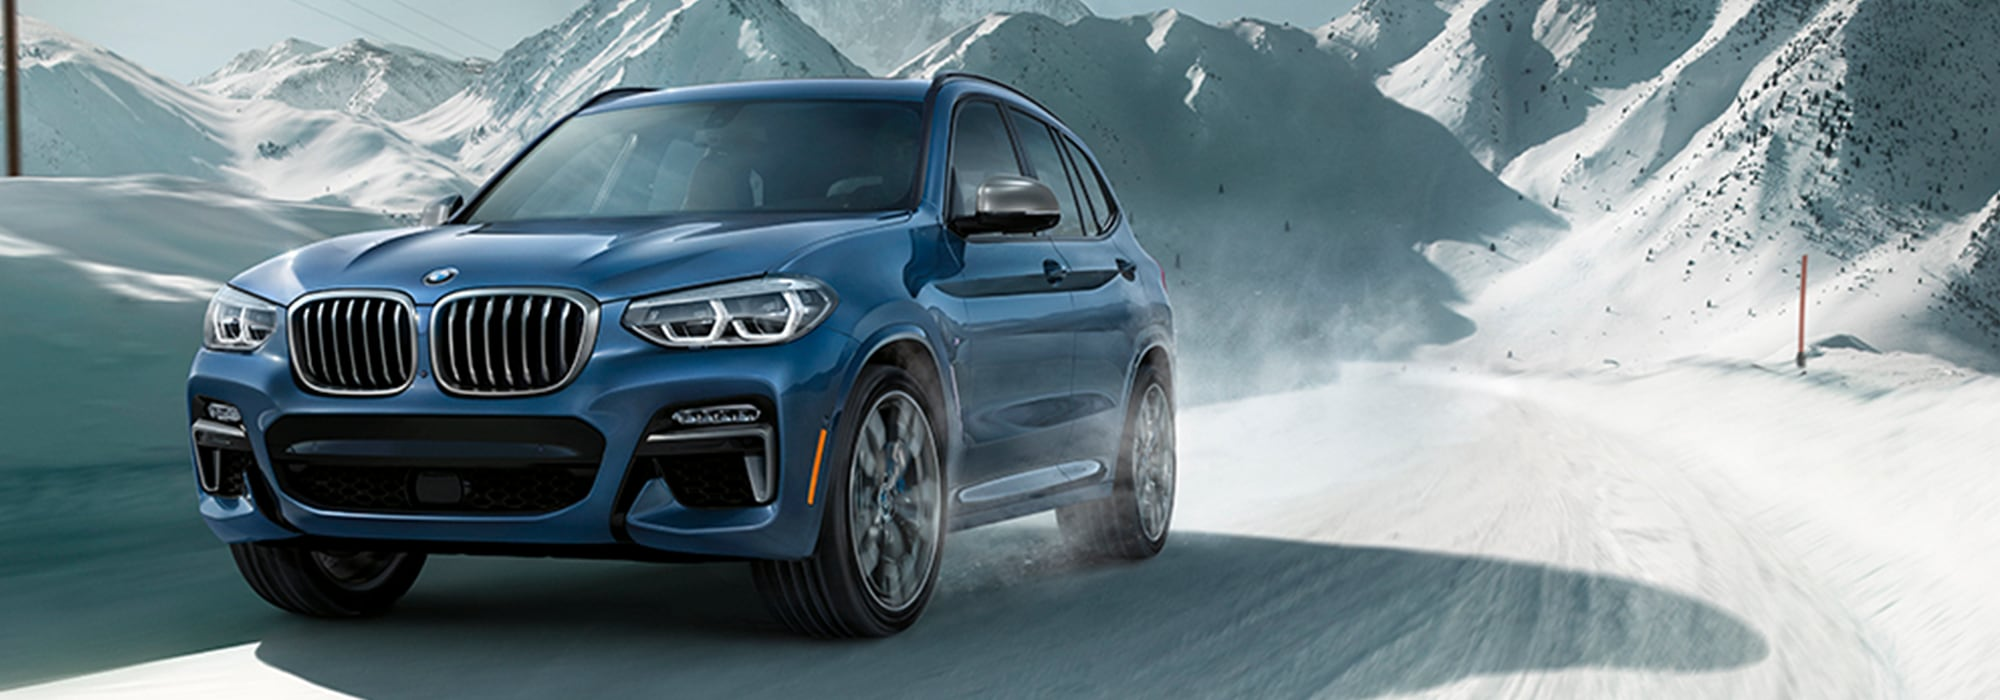 a07a80dcd9d Here at Karl Knauz BMW, your local BMW dealer, we are proud to have the  outstanding 2019 BMW X Series in our inventory. This line of BMW models is  ...